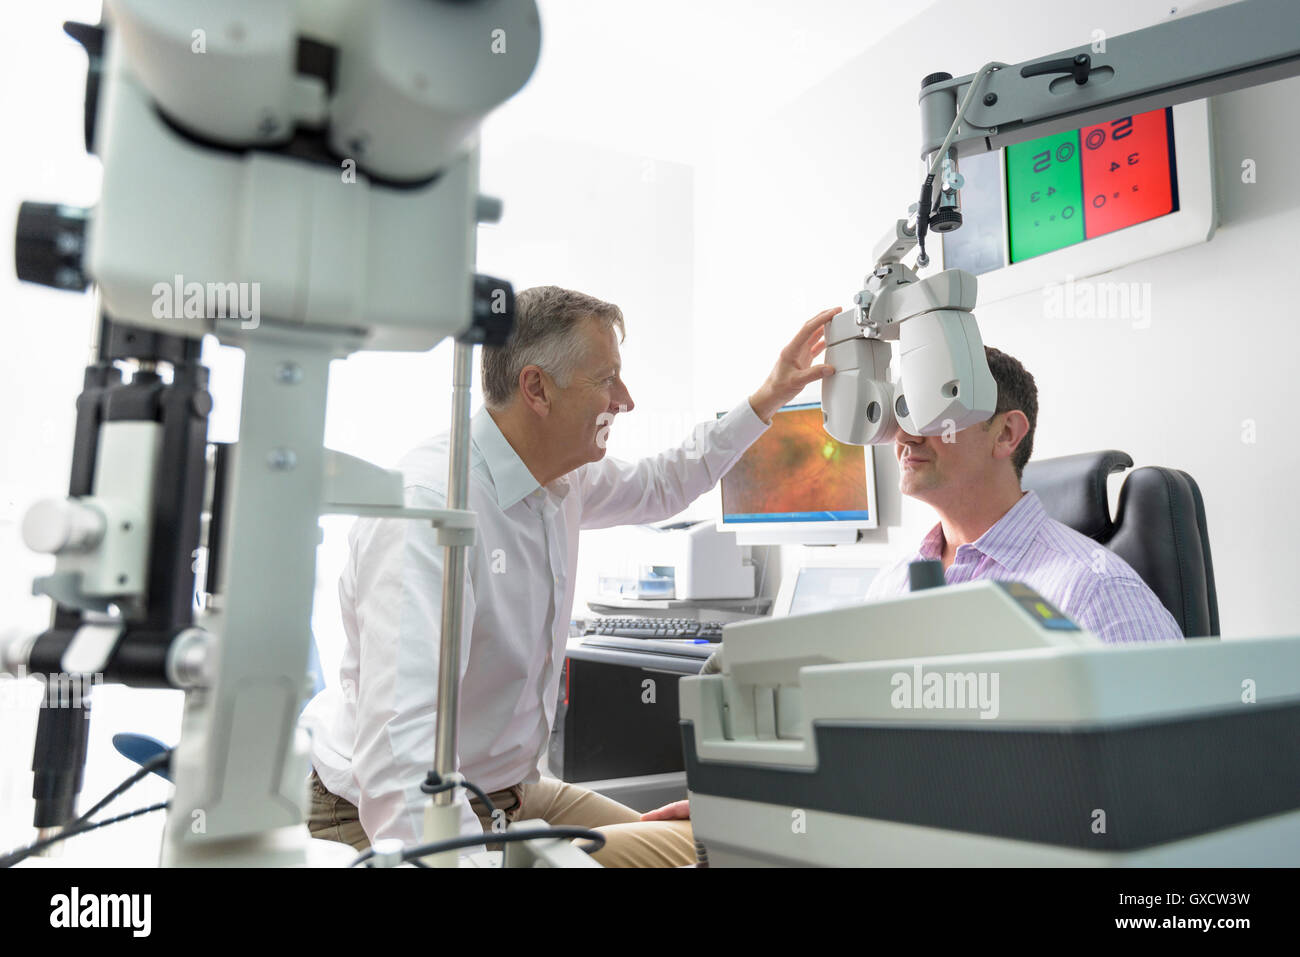 Optician measuring patient's eyes at small business opticians - Stock Image